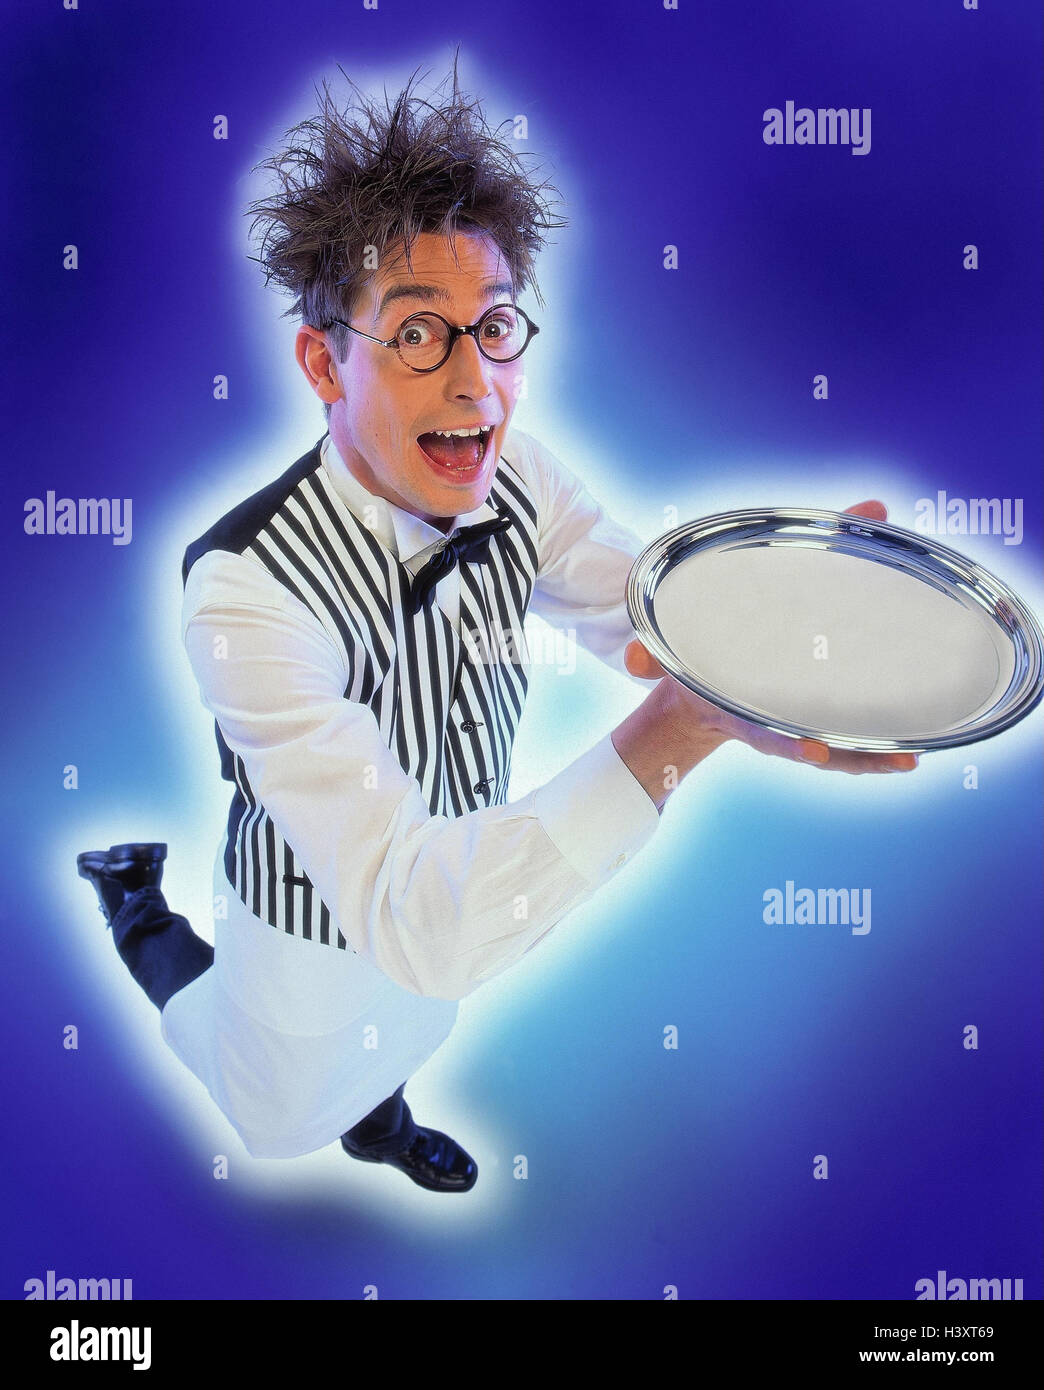 Waiters, glasses, silver tablet, carry, facial play man, service, waiters, gastronomy, serve, serve, bring, presentation, - Stock Image